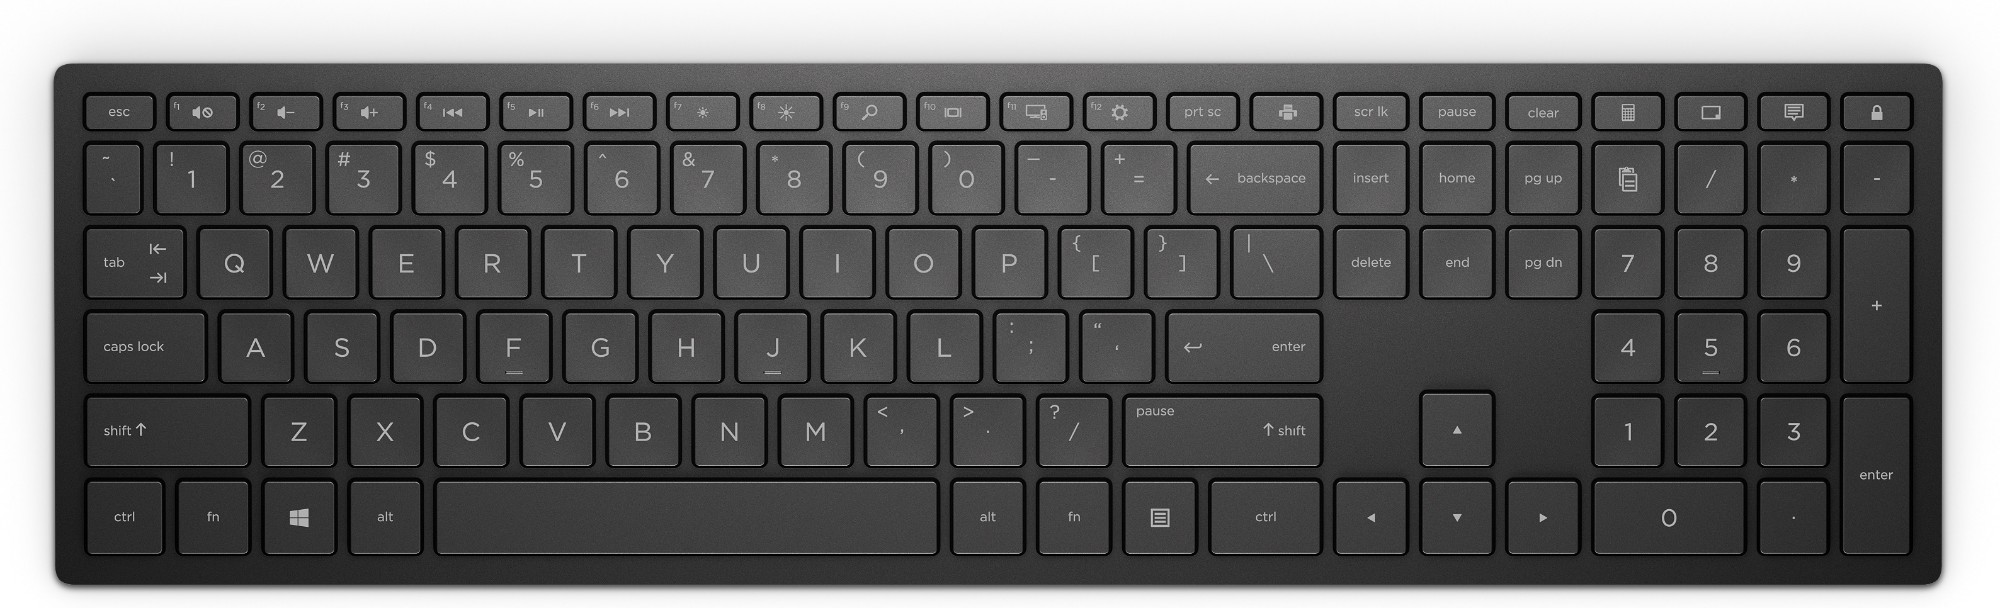 HP Pavilion 600 keyboard RF Wireless Black